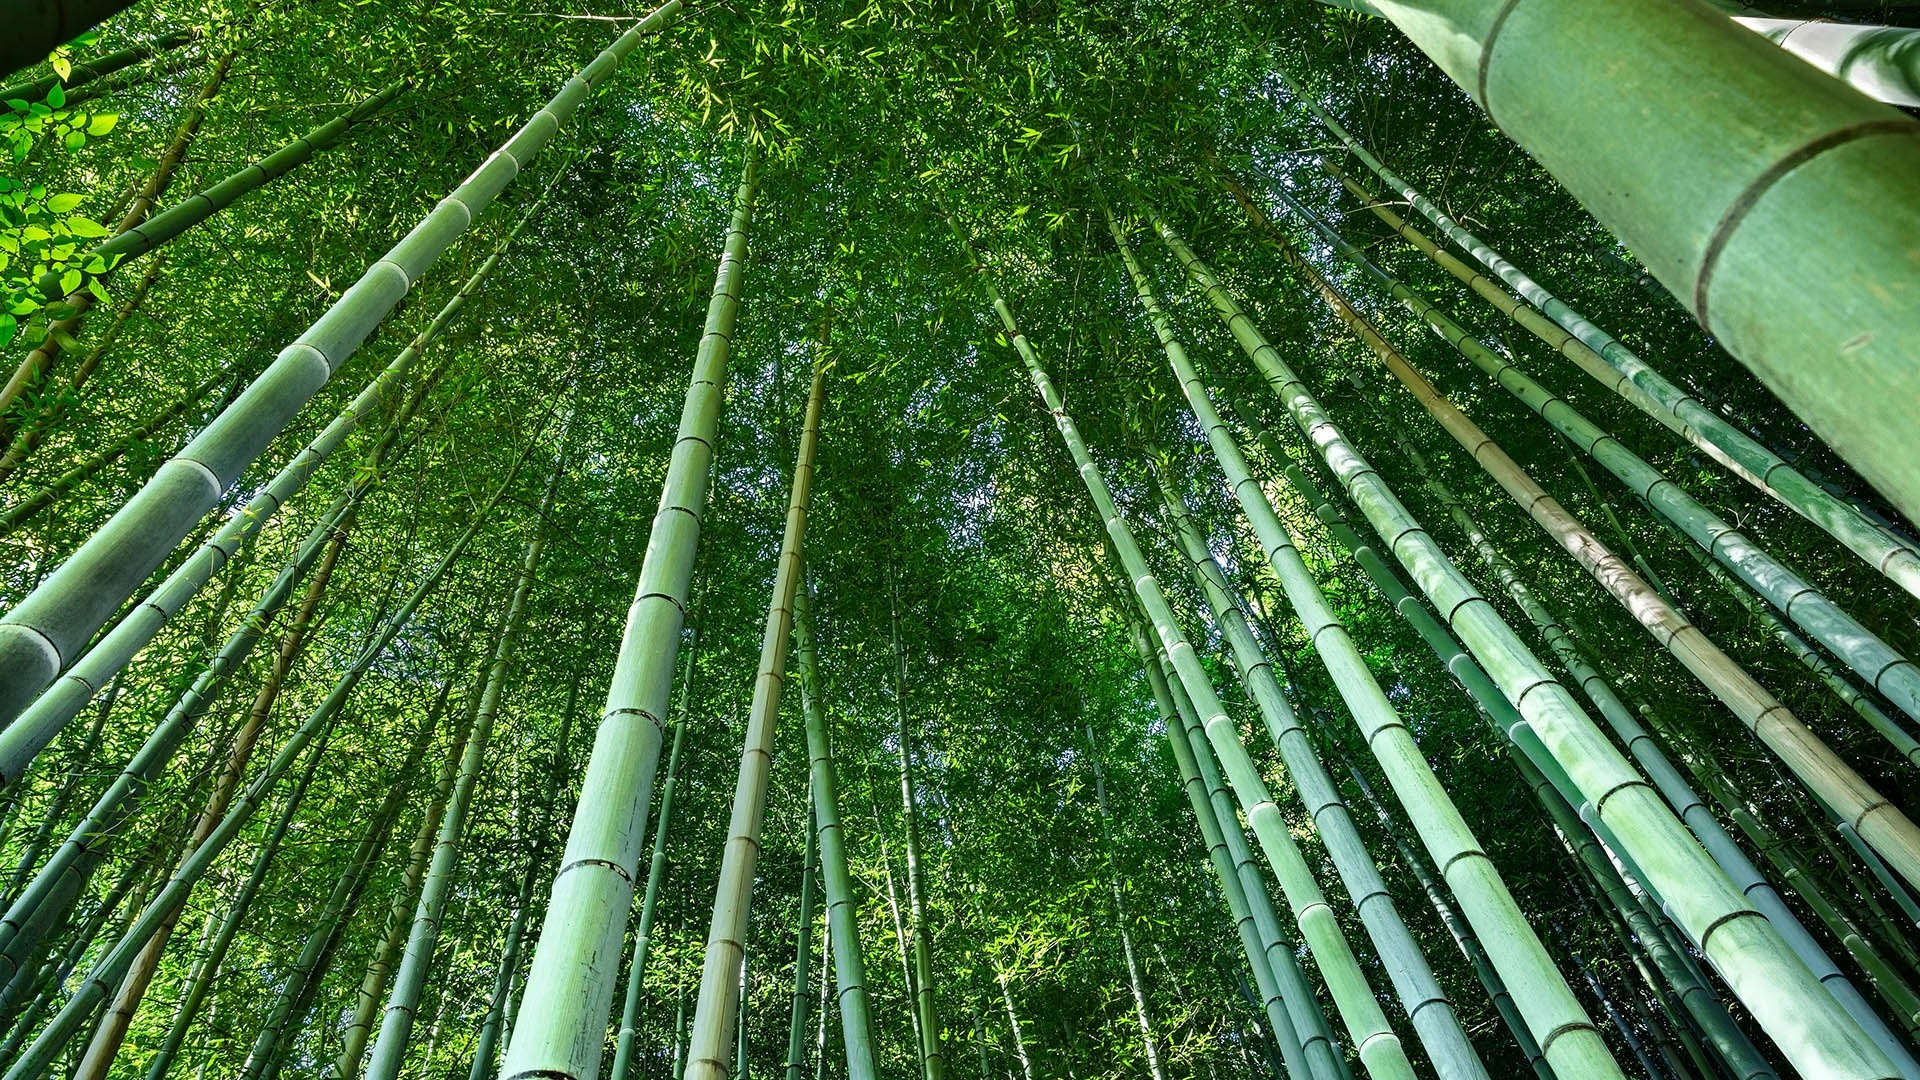 Low angle view of bamboo in forest, Kyoto, Japan wallpaper